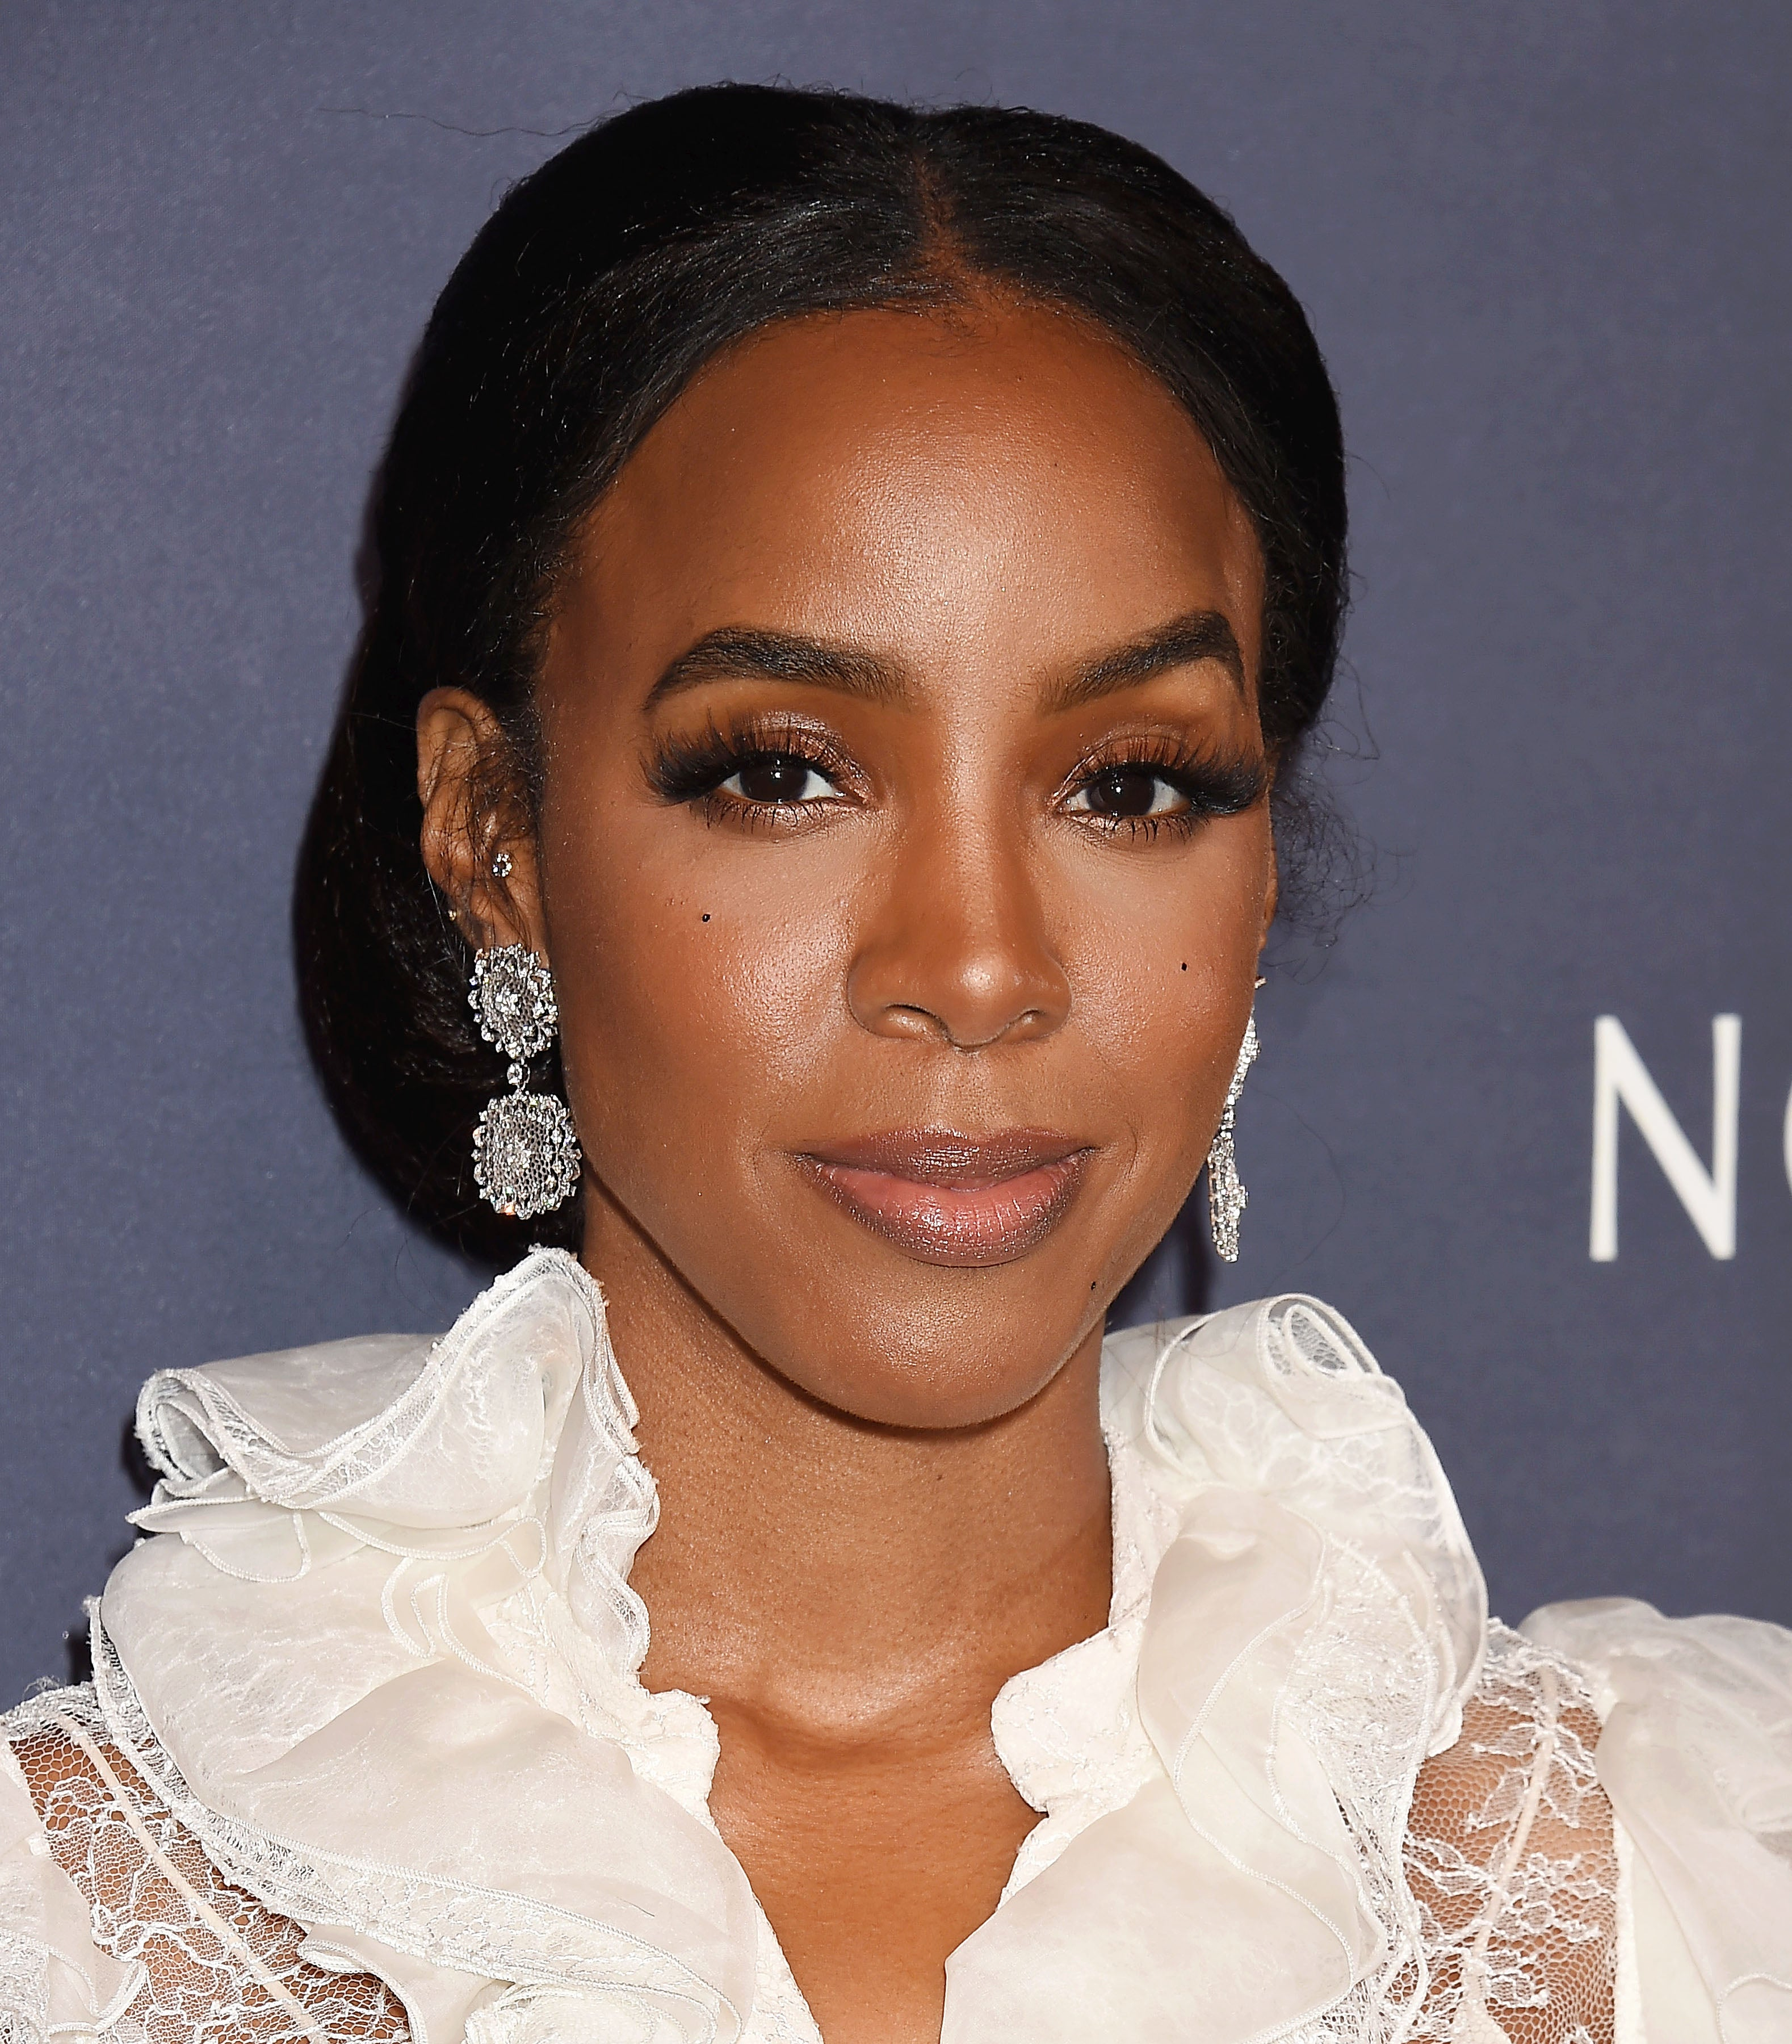 Kelly Rowland Is Thinking Of Reconnecting With Her Estranged Father 'For The Sake Of My Son'